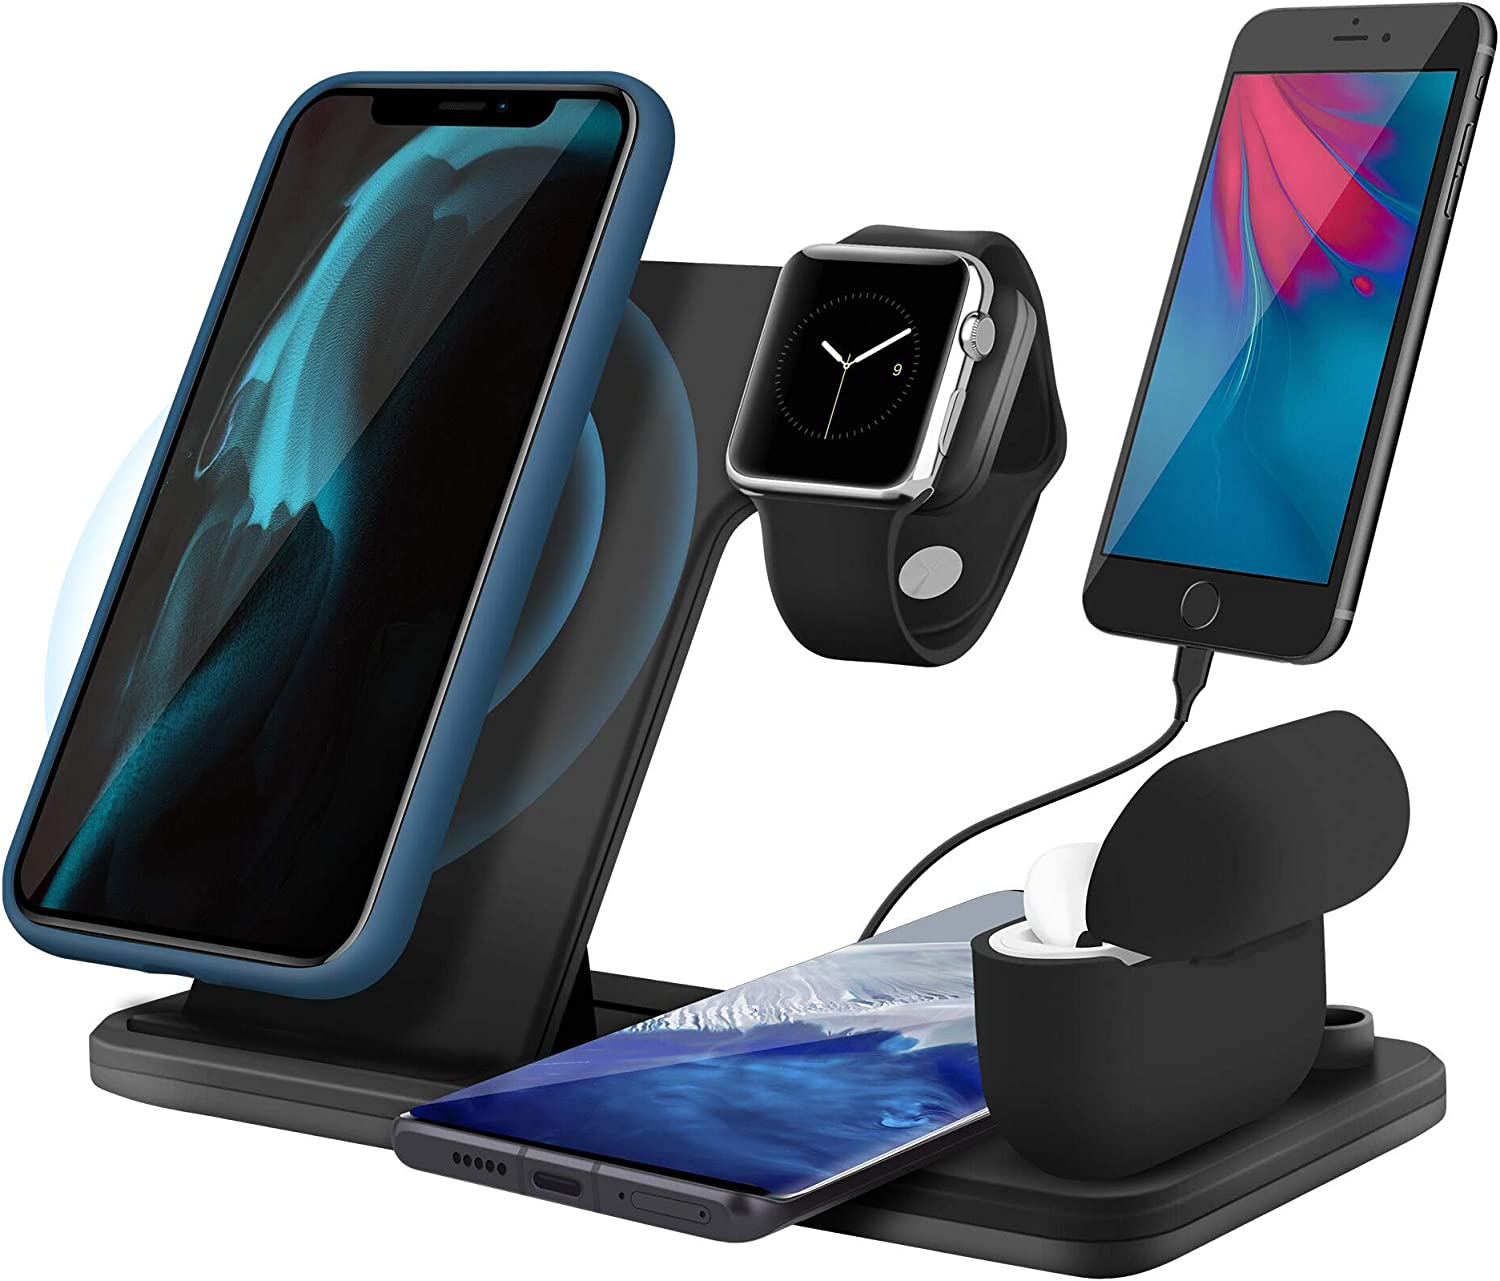 5 in 1 Wireless Charging Station for Apple Watch 6 Airpods Pro, Xperg 30W Fast Wireless Charger Stand Dock Compatible with iPhone 11 12 Pro Max SE Xr X Xs Max Mini/iWatch/Qi-Certified Phones